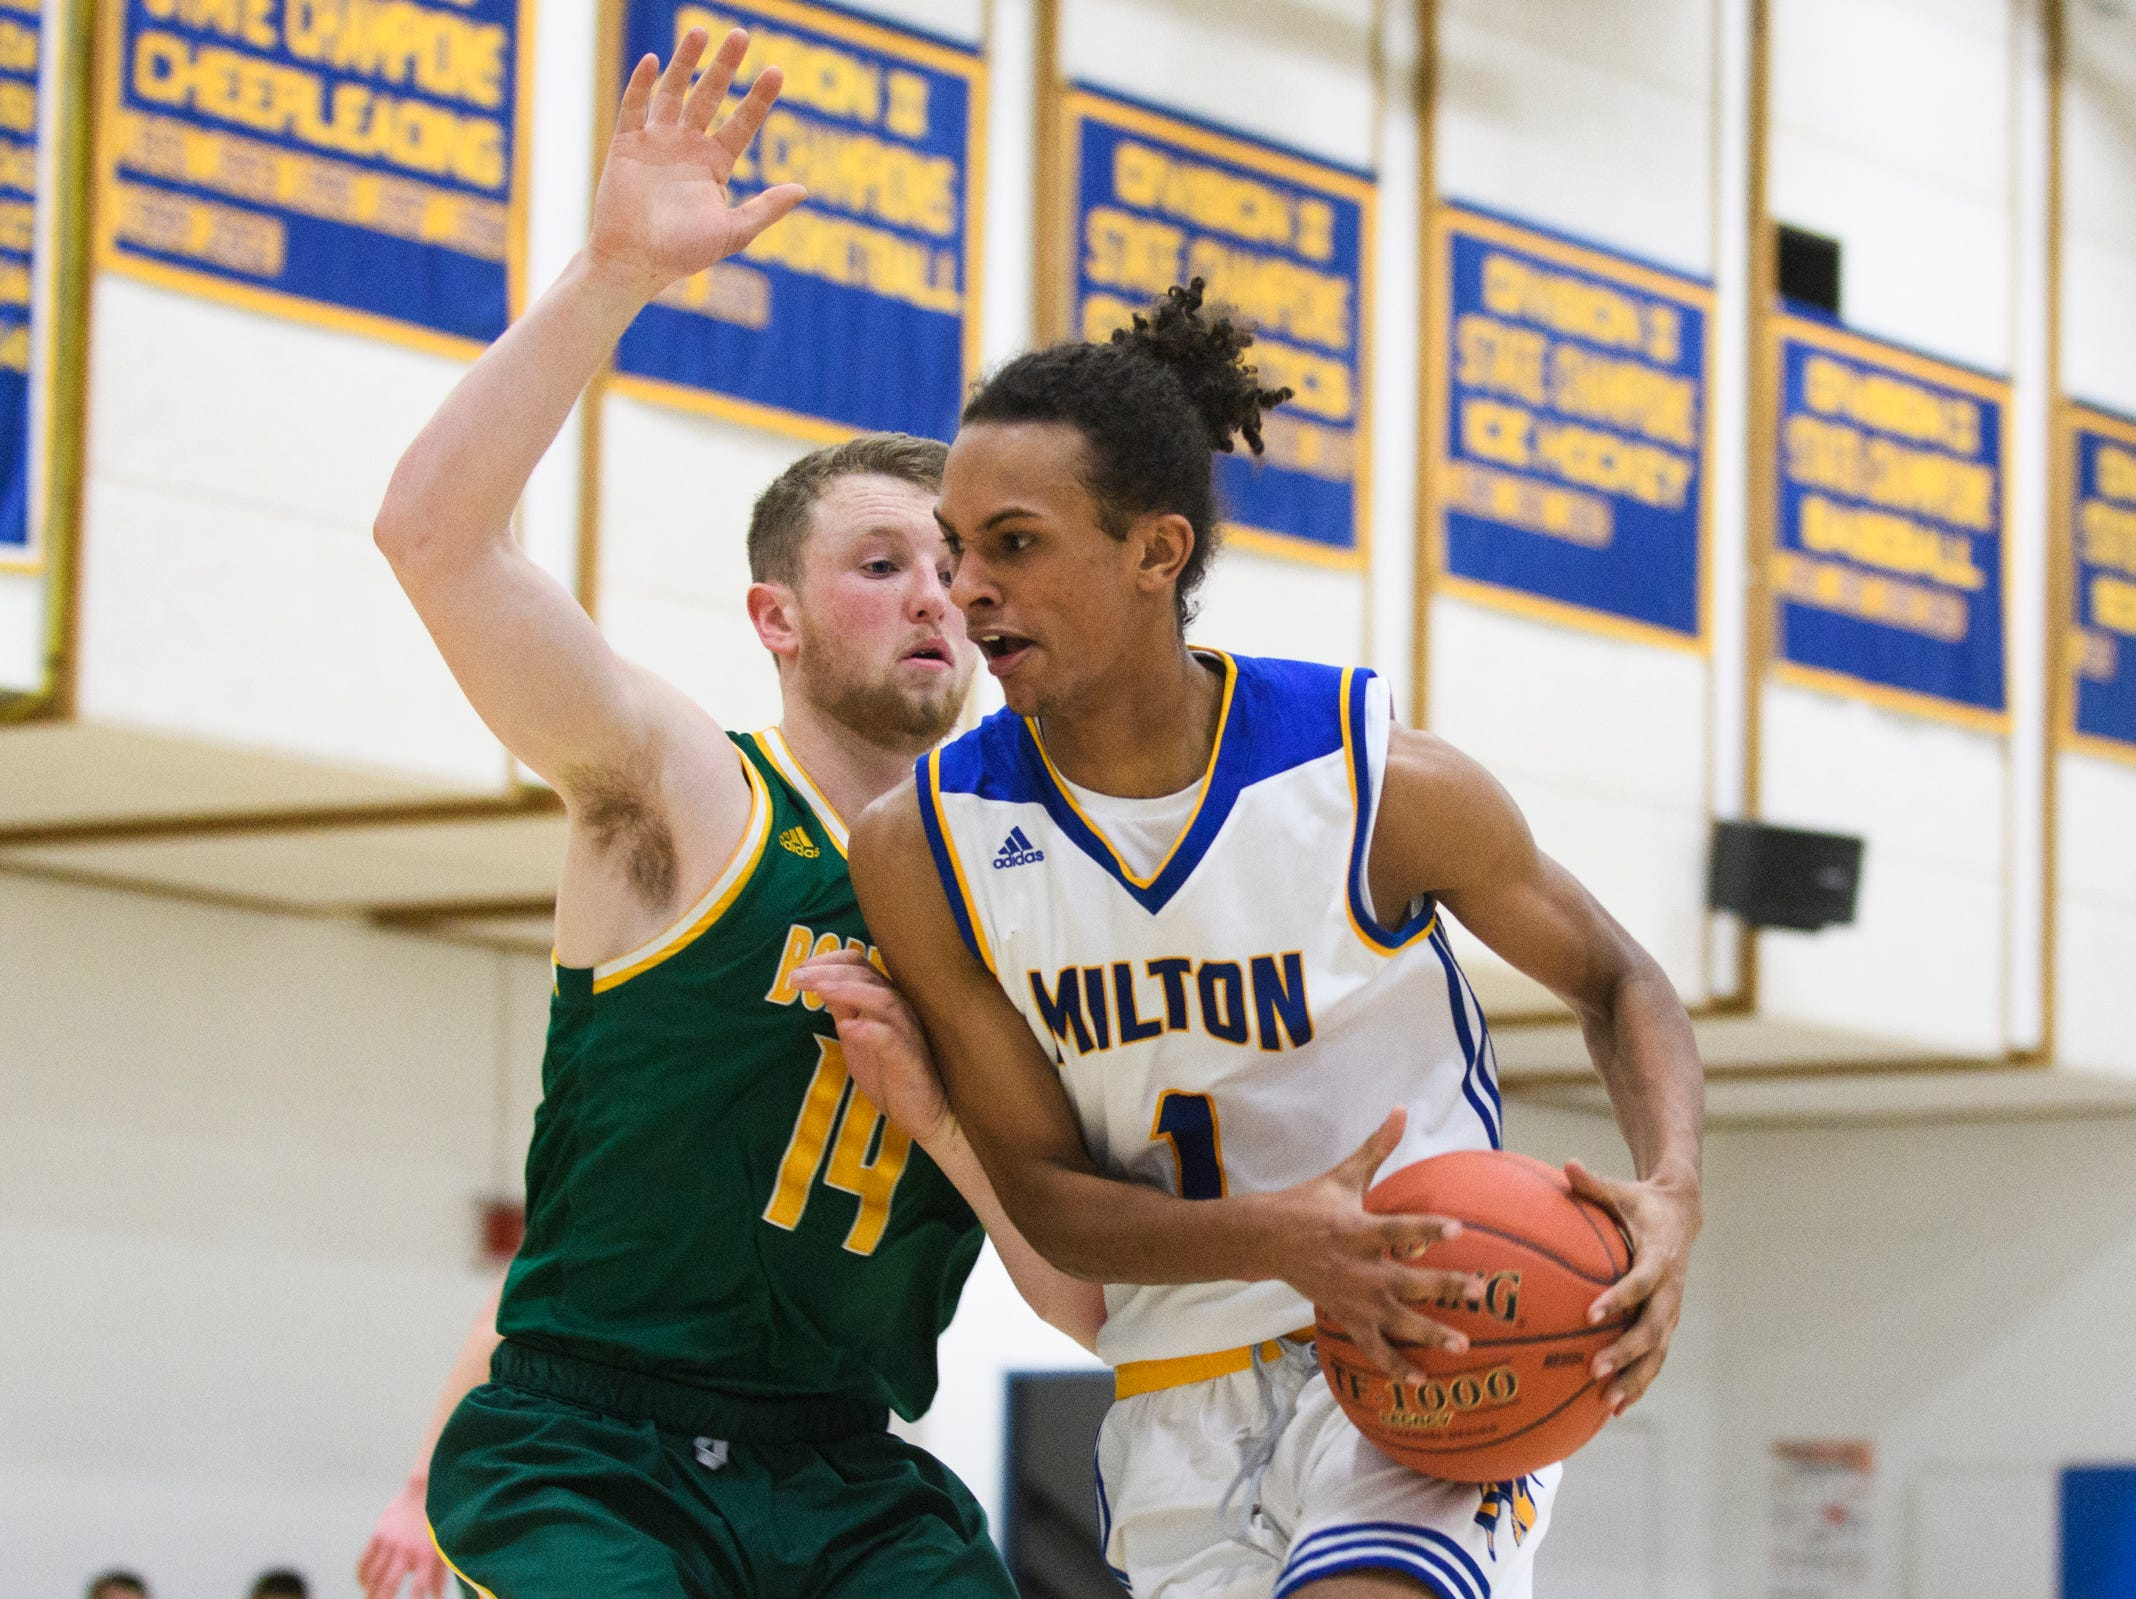 Milton's Sam Patterson (1) drives to the hoop past BFA's Kameron Dunsmore (14) during the boys basketball game between the BFA St. Albans Bobwhites and the Milton Yellowjackets at Milton High School on Tuesday night January 15, 2019 in Milton.